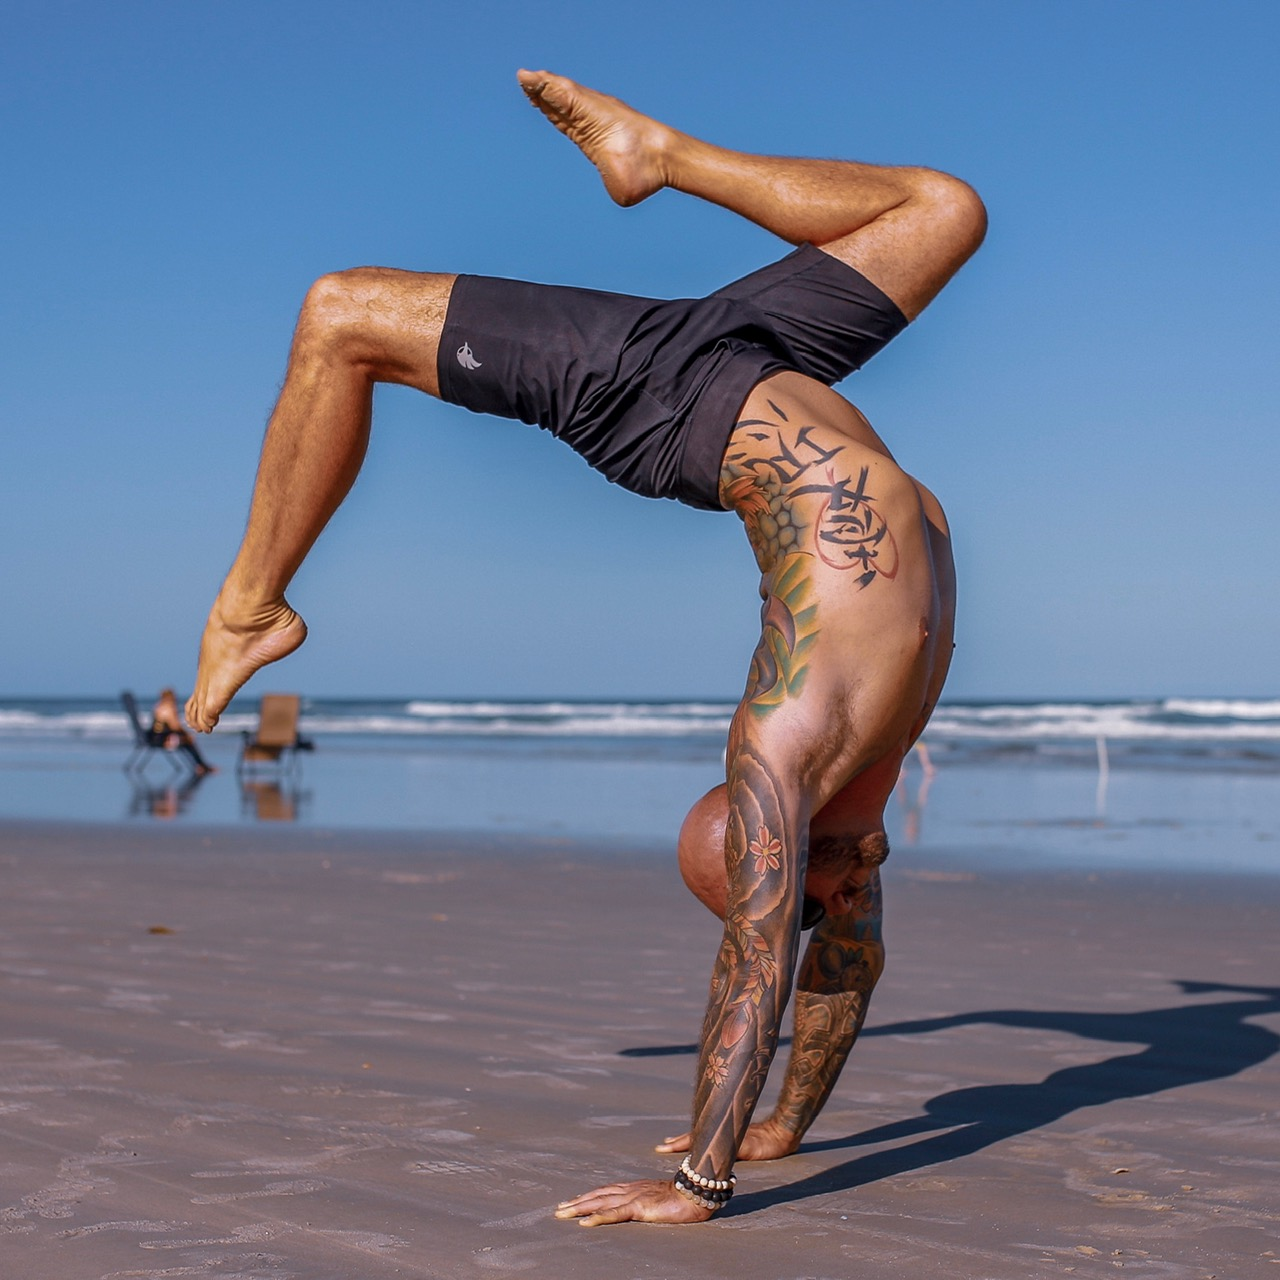 Hollowback Handstand